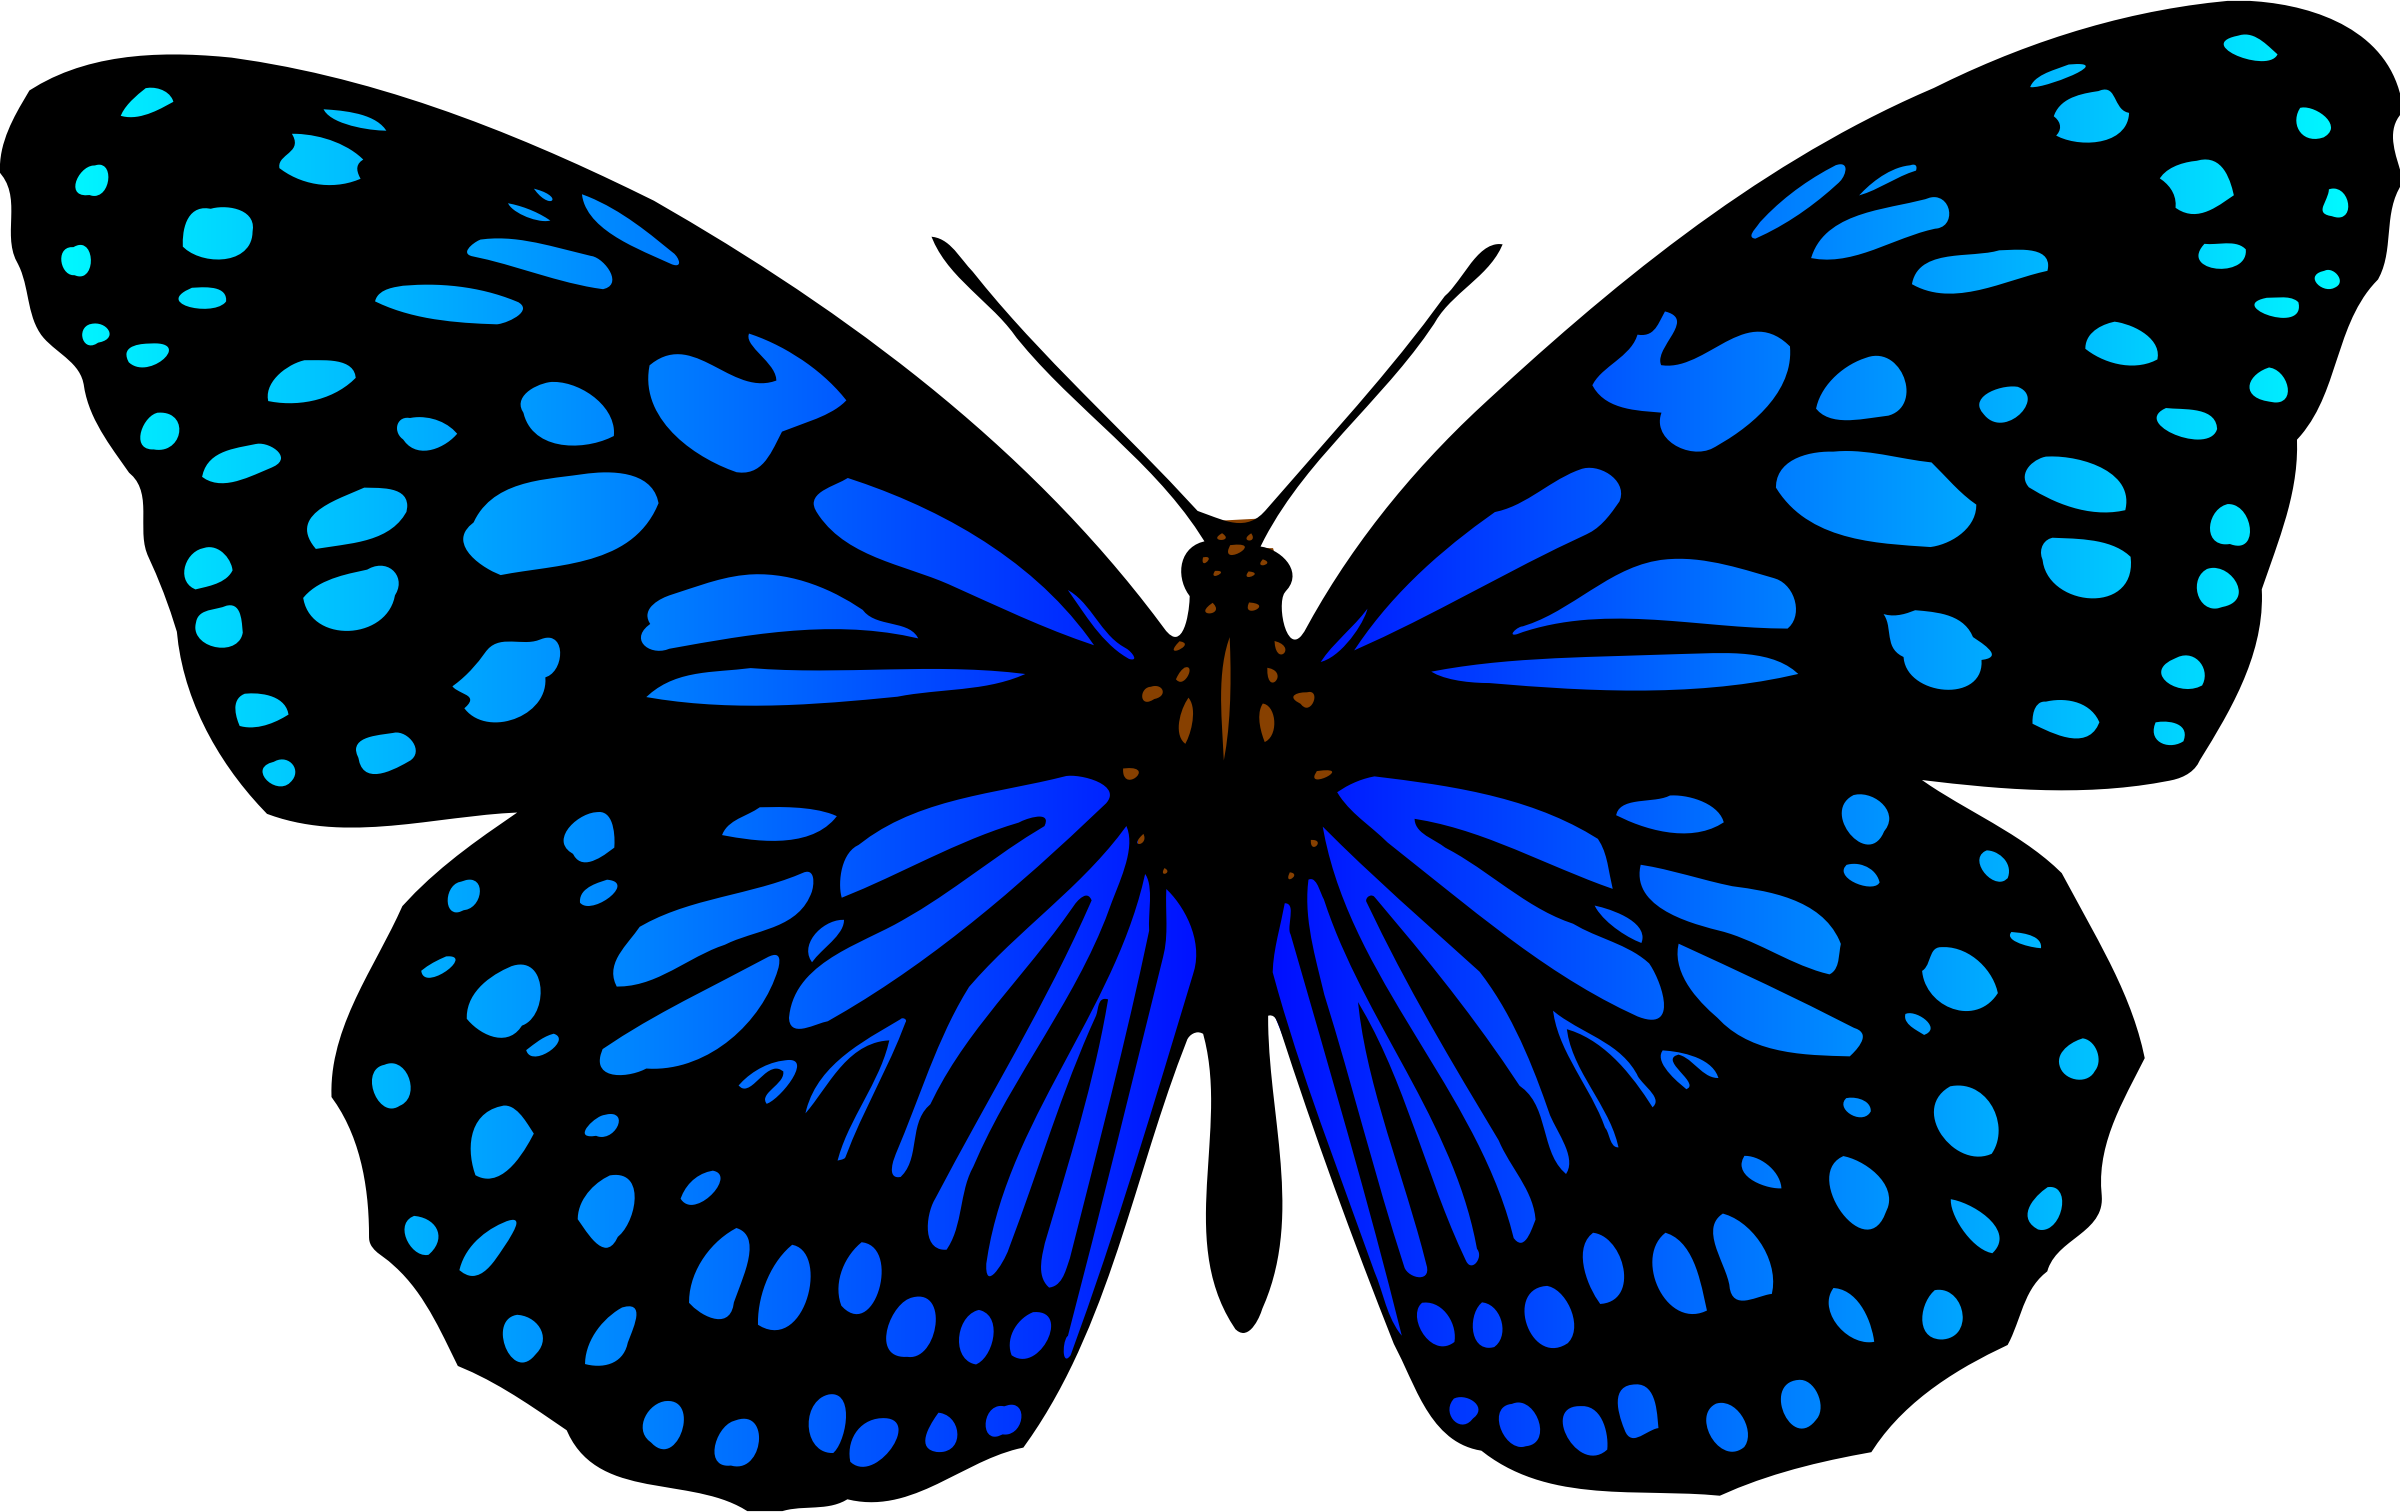 3 clipart butterfly. Colour big image png